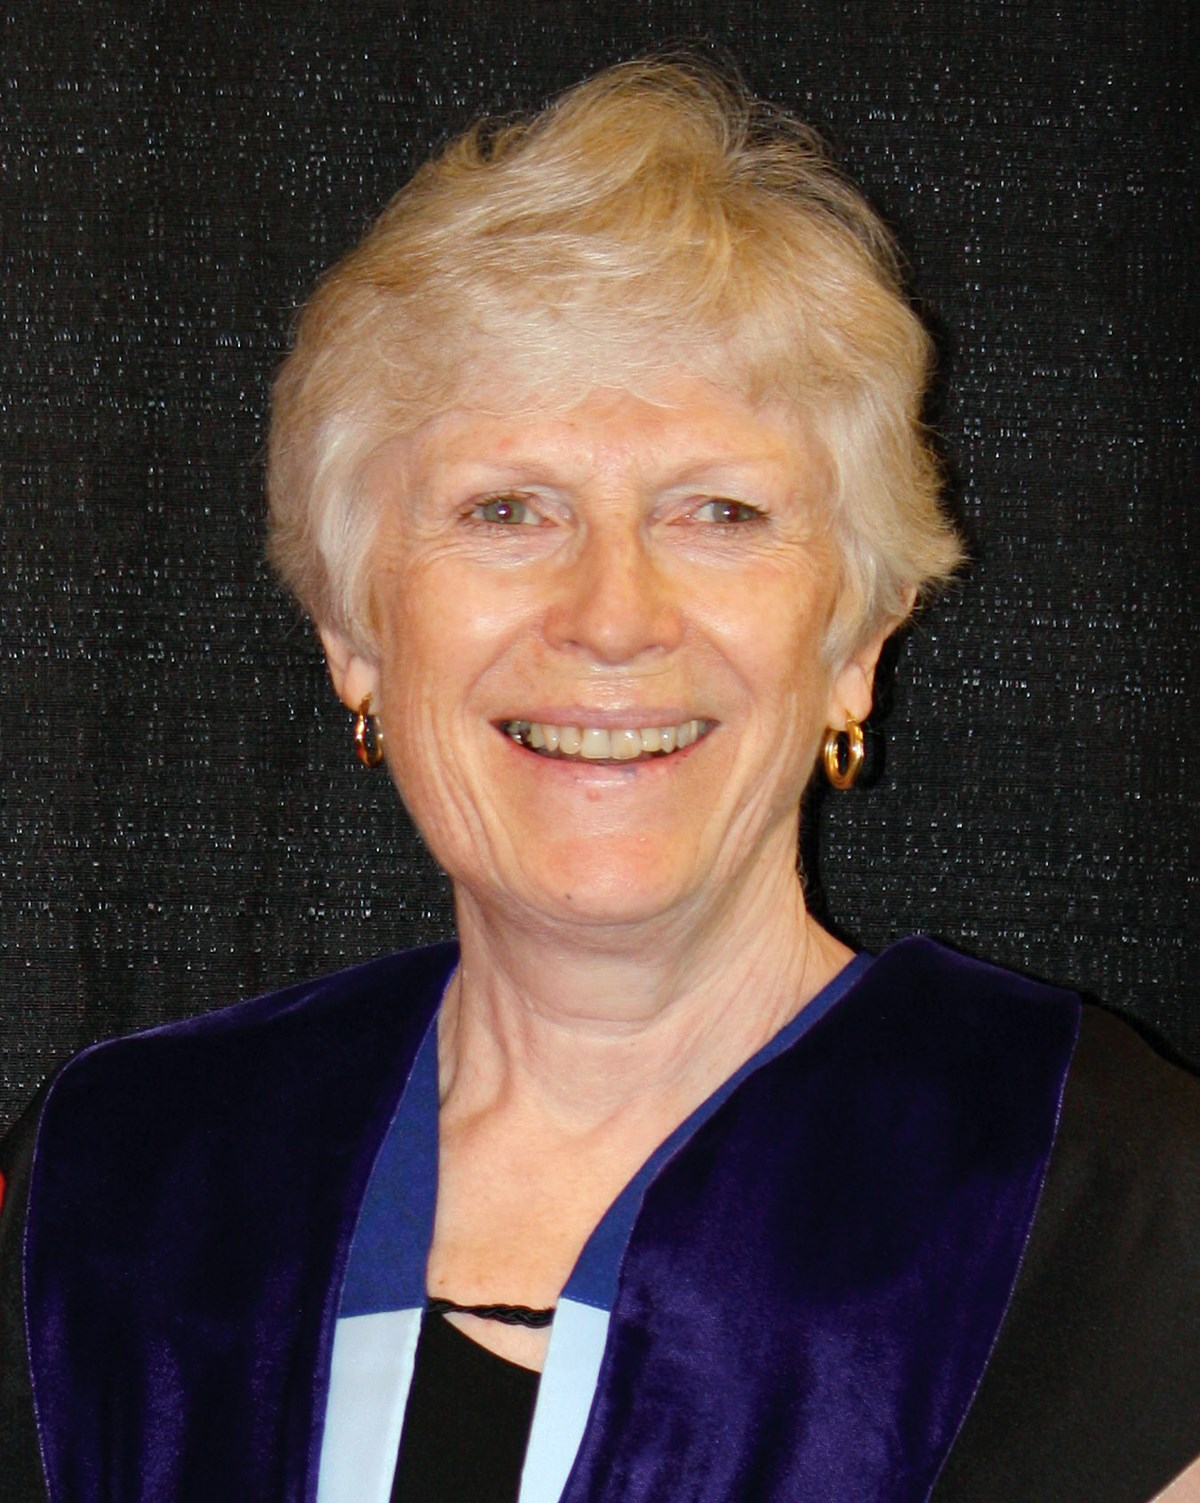 Pat Armstrong is a Distinguished Research Professor of Sociology at York University in Toronto. She held a CHSRF/CIHR Chair in Health Services and Nursing Research, and has published on a wide variety of issues related to long-term care, health care policy, and women's health.